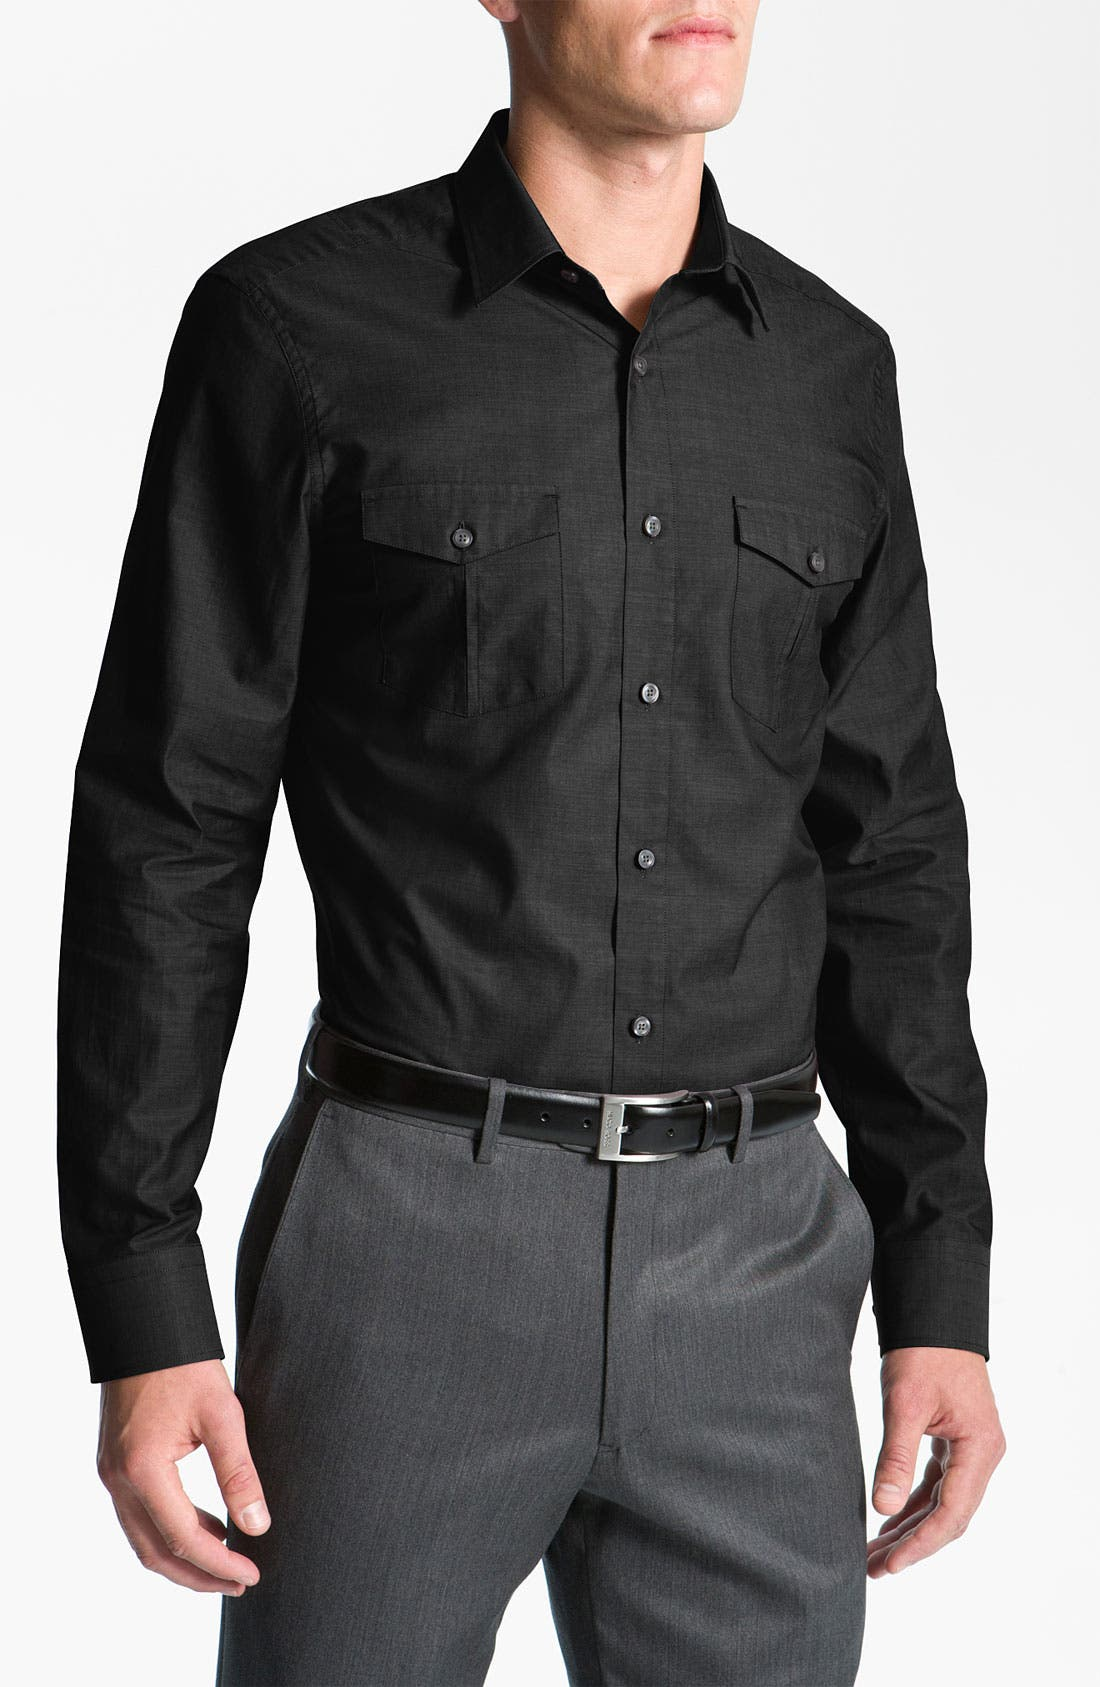 Alternate Image 1 Selected - Calibrate 'Military' Sport Shirt